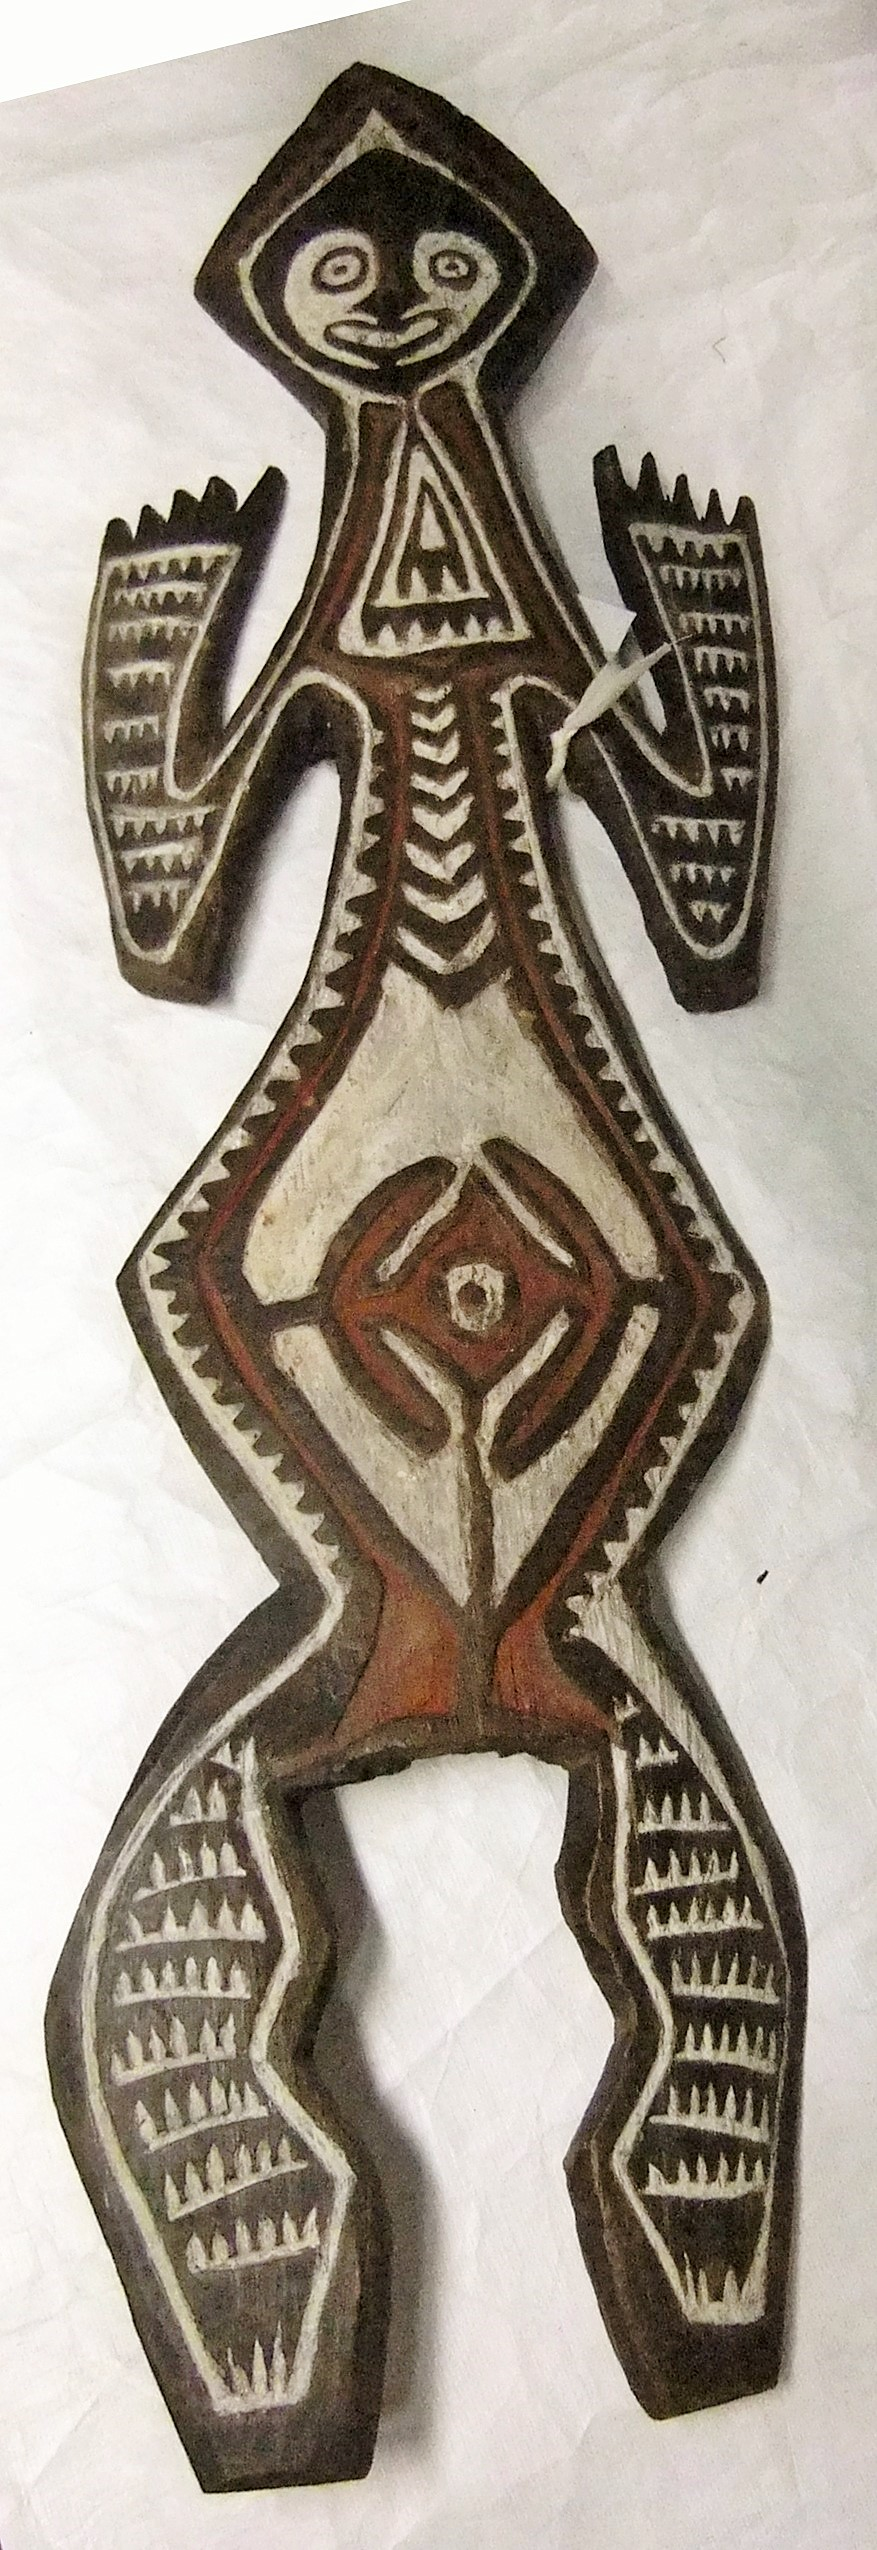 A.1951.366 Carved wooden memorial figure